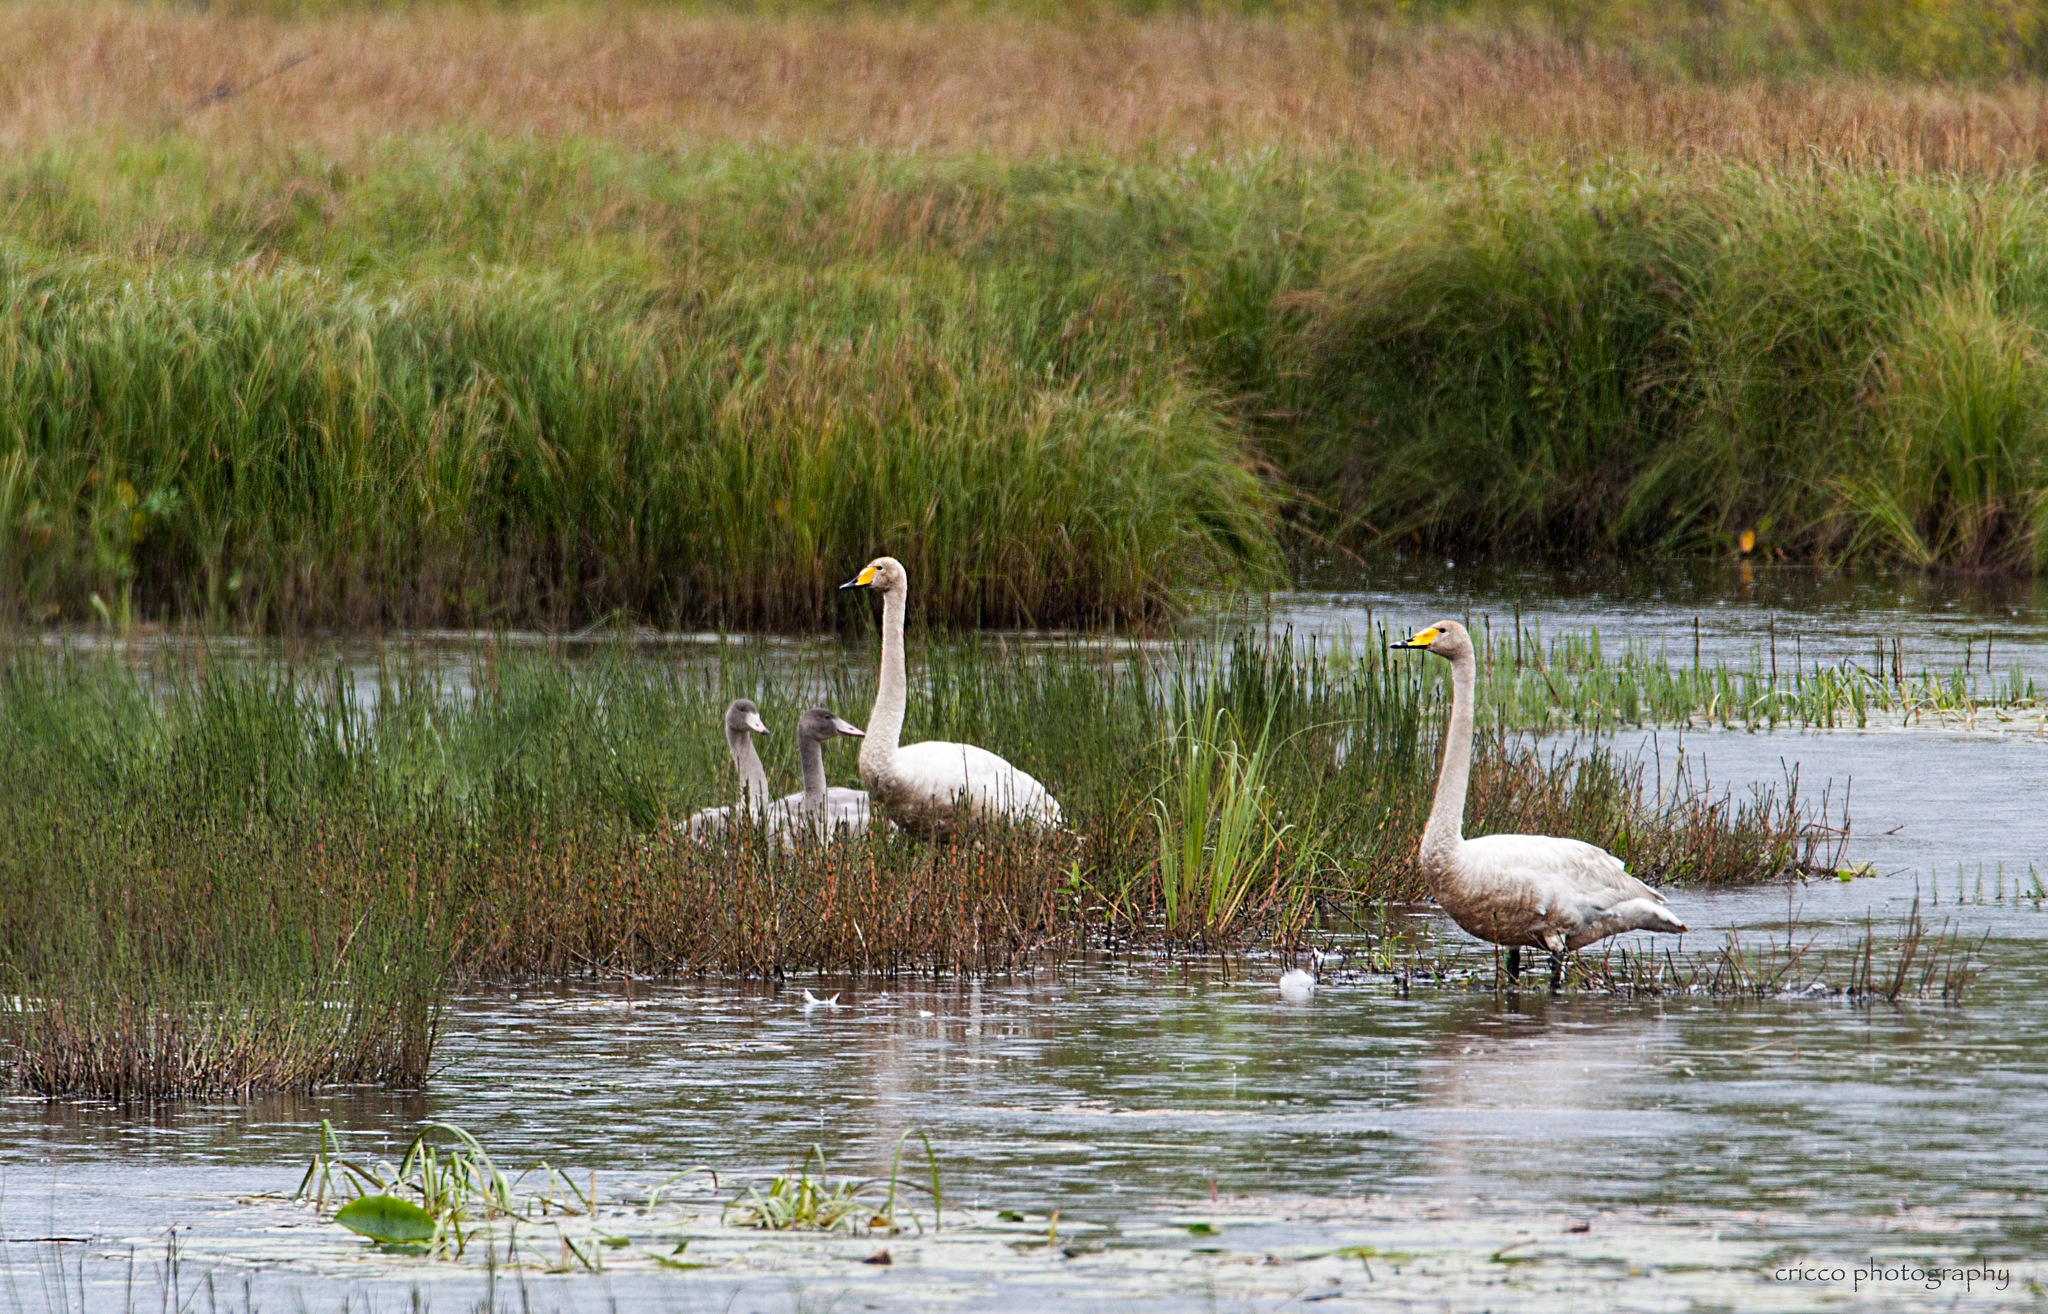 Whooper swans with two chicks by cricco photography